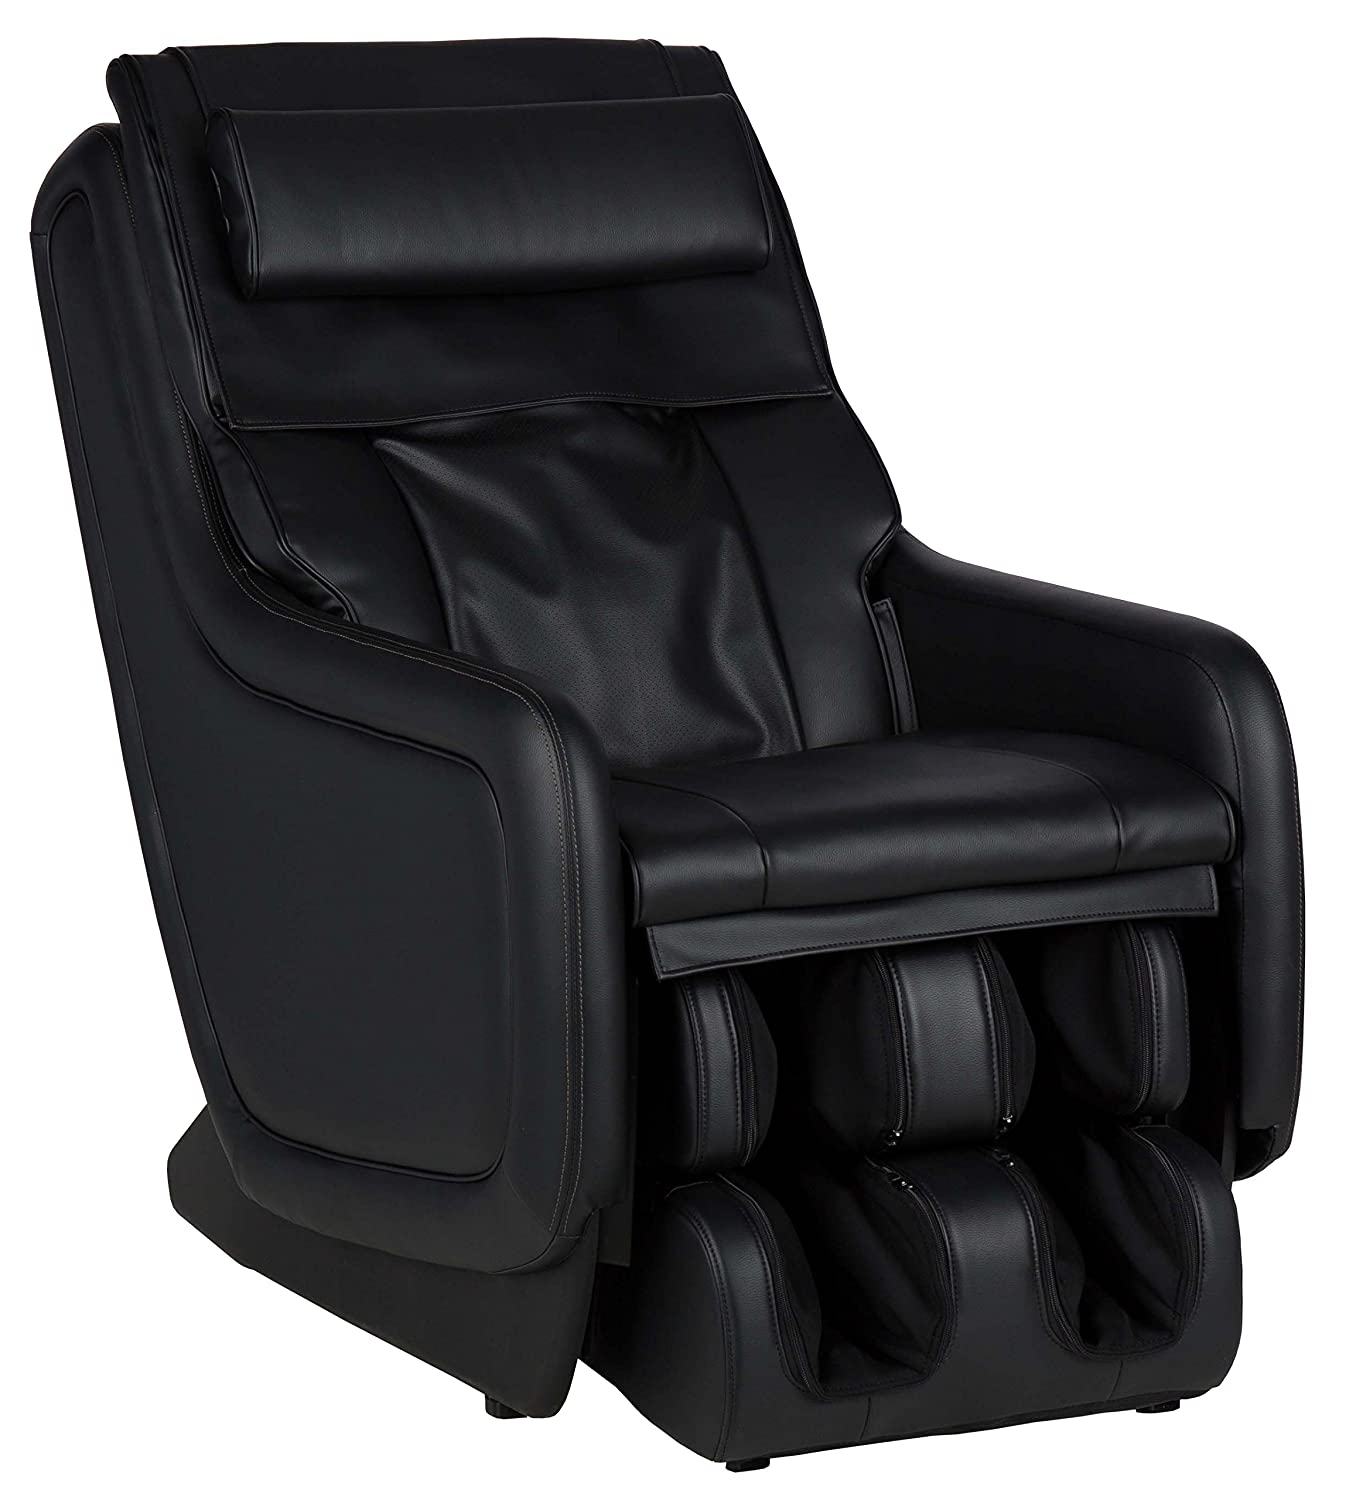 Amazon ZeroG 5 0 Zero Gravity Premium Massage Chair with 3D